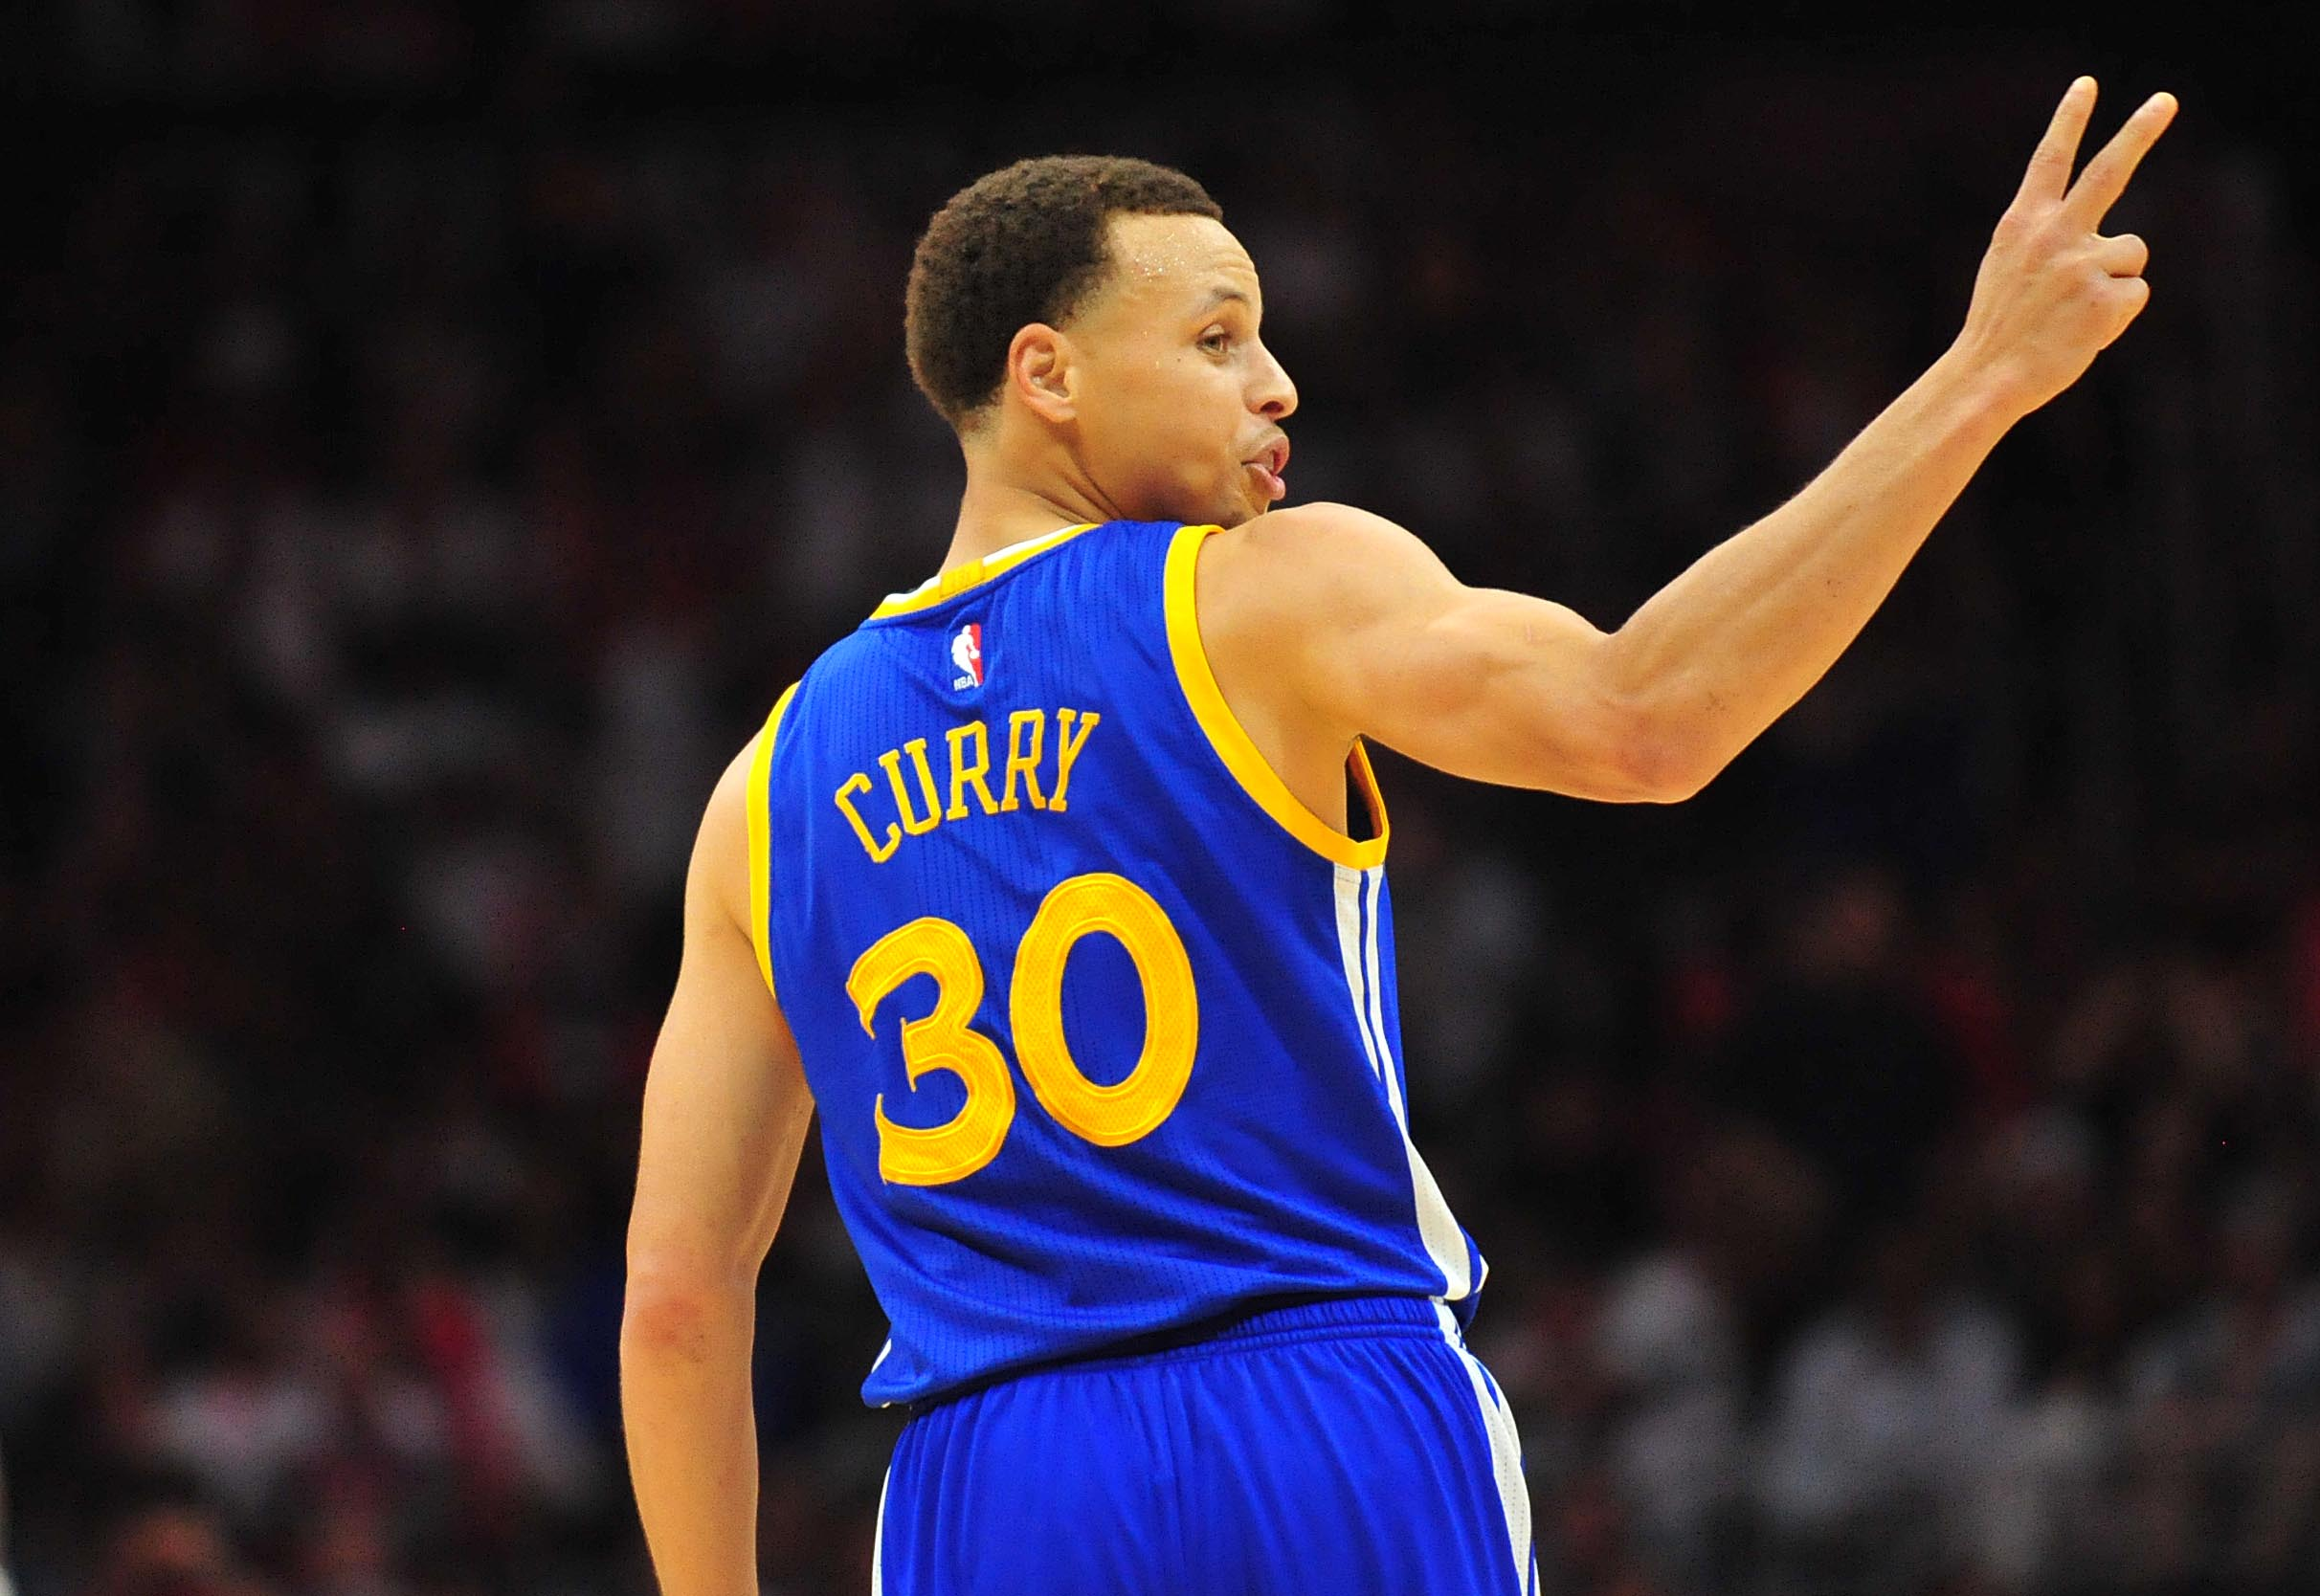 Stephen Curry Wallpapers High Resolution and Quality Download Stephen Curry